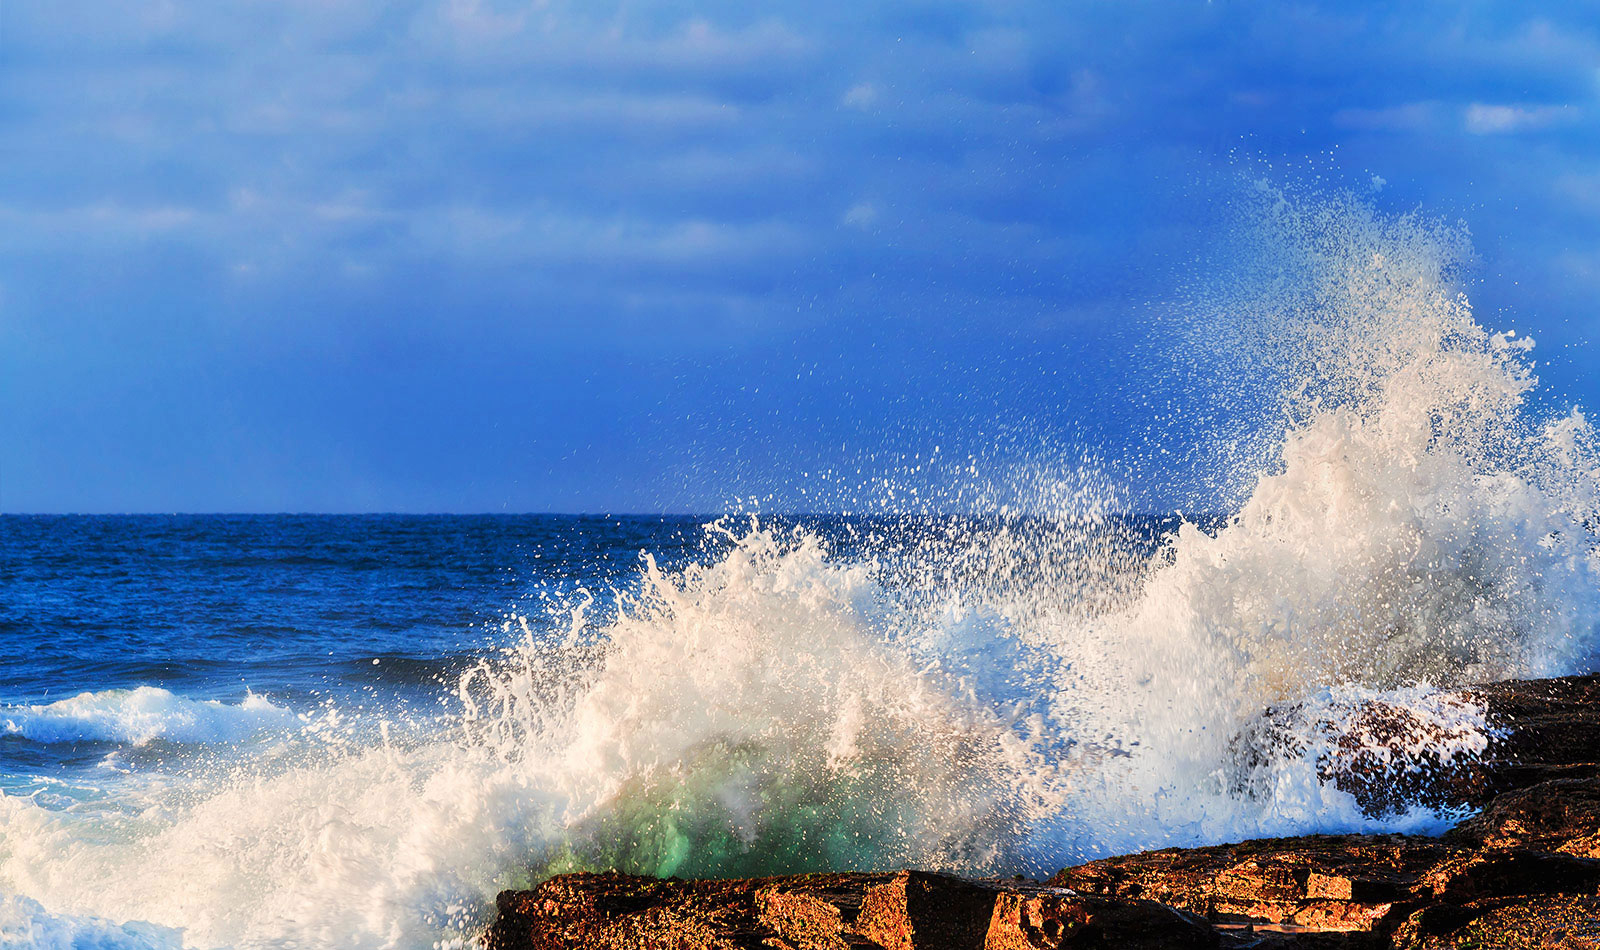 Waves from the ocean crashing onto rocks